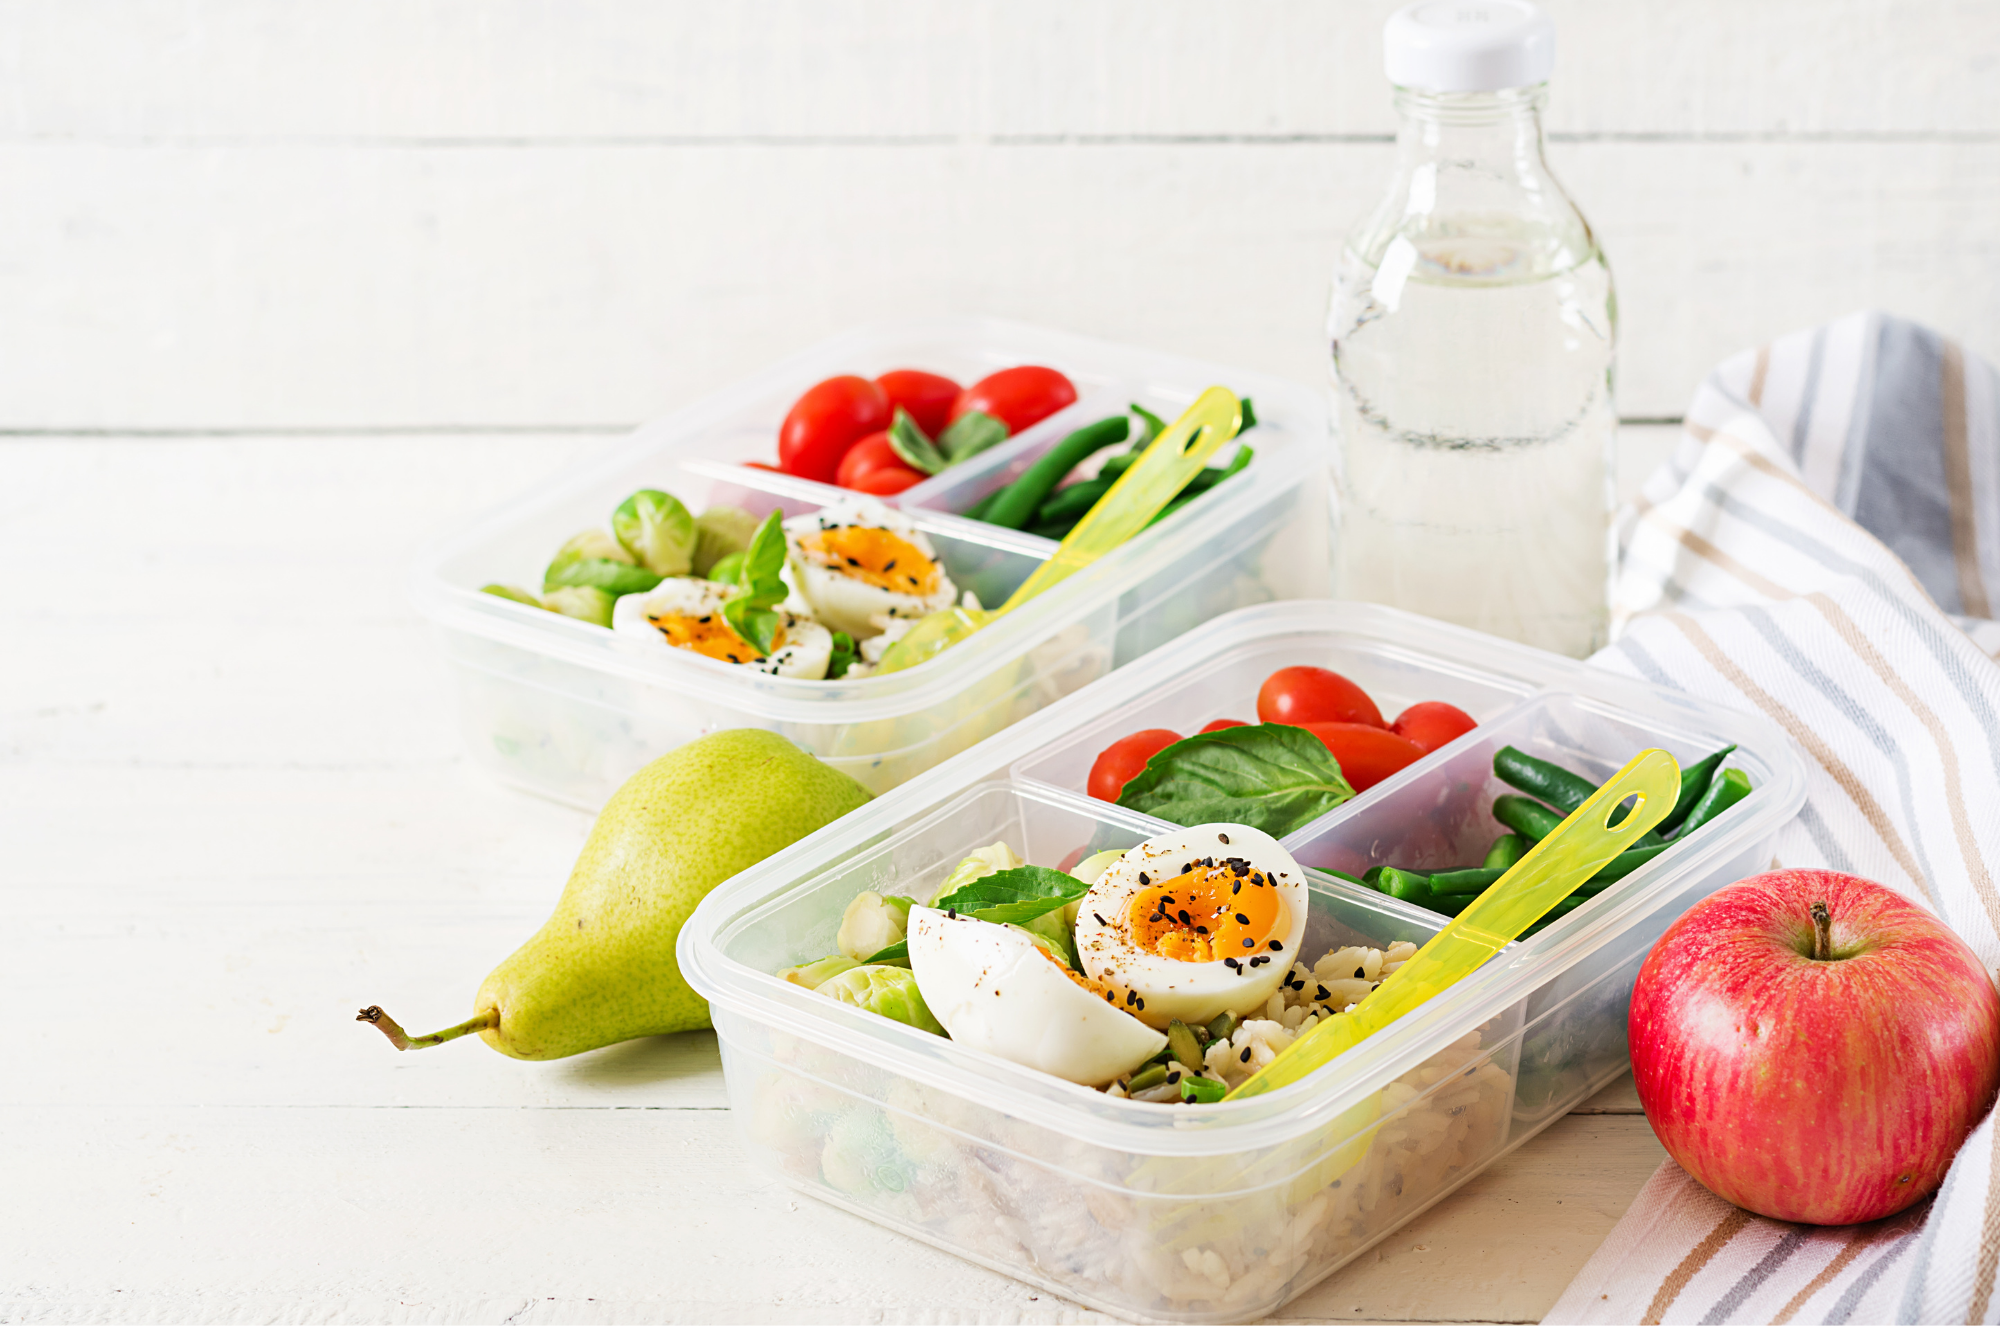 weight loss meal prep ideas. two containers of eggs, veggies and fruit on the side.